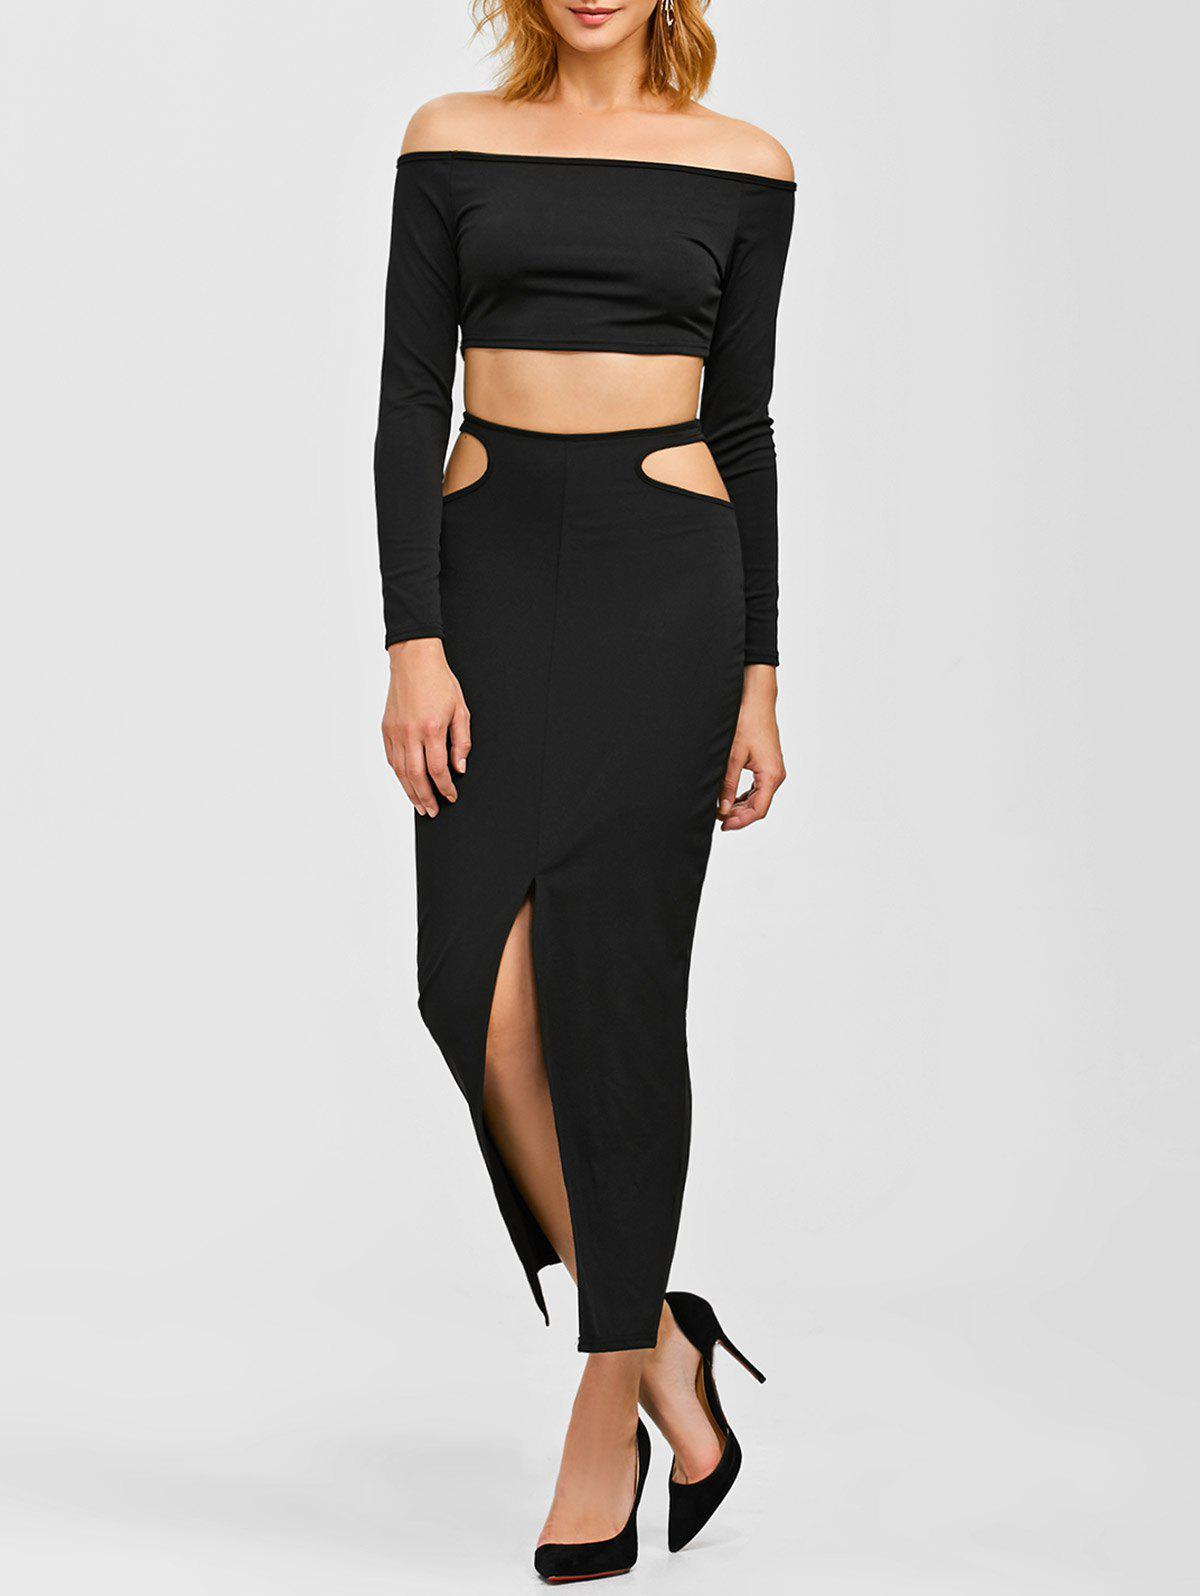 Crop Top and Front Slit Cut Out Skirt - BLACK S